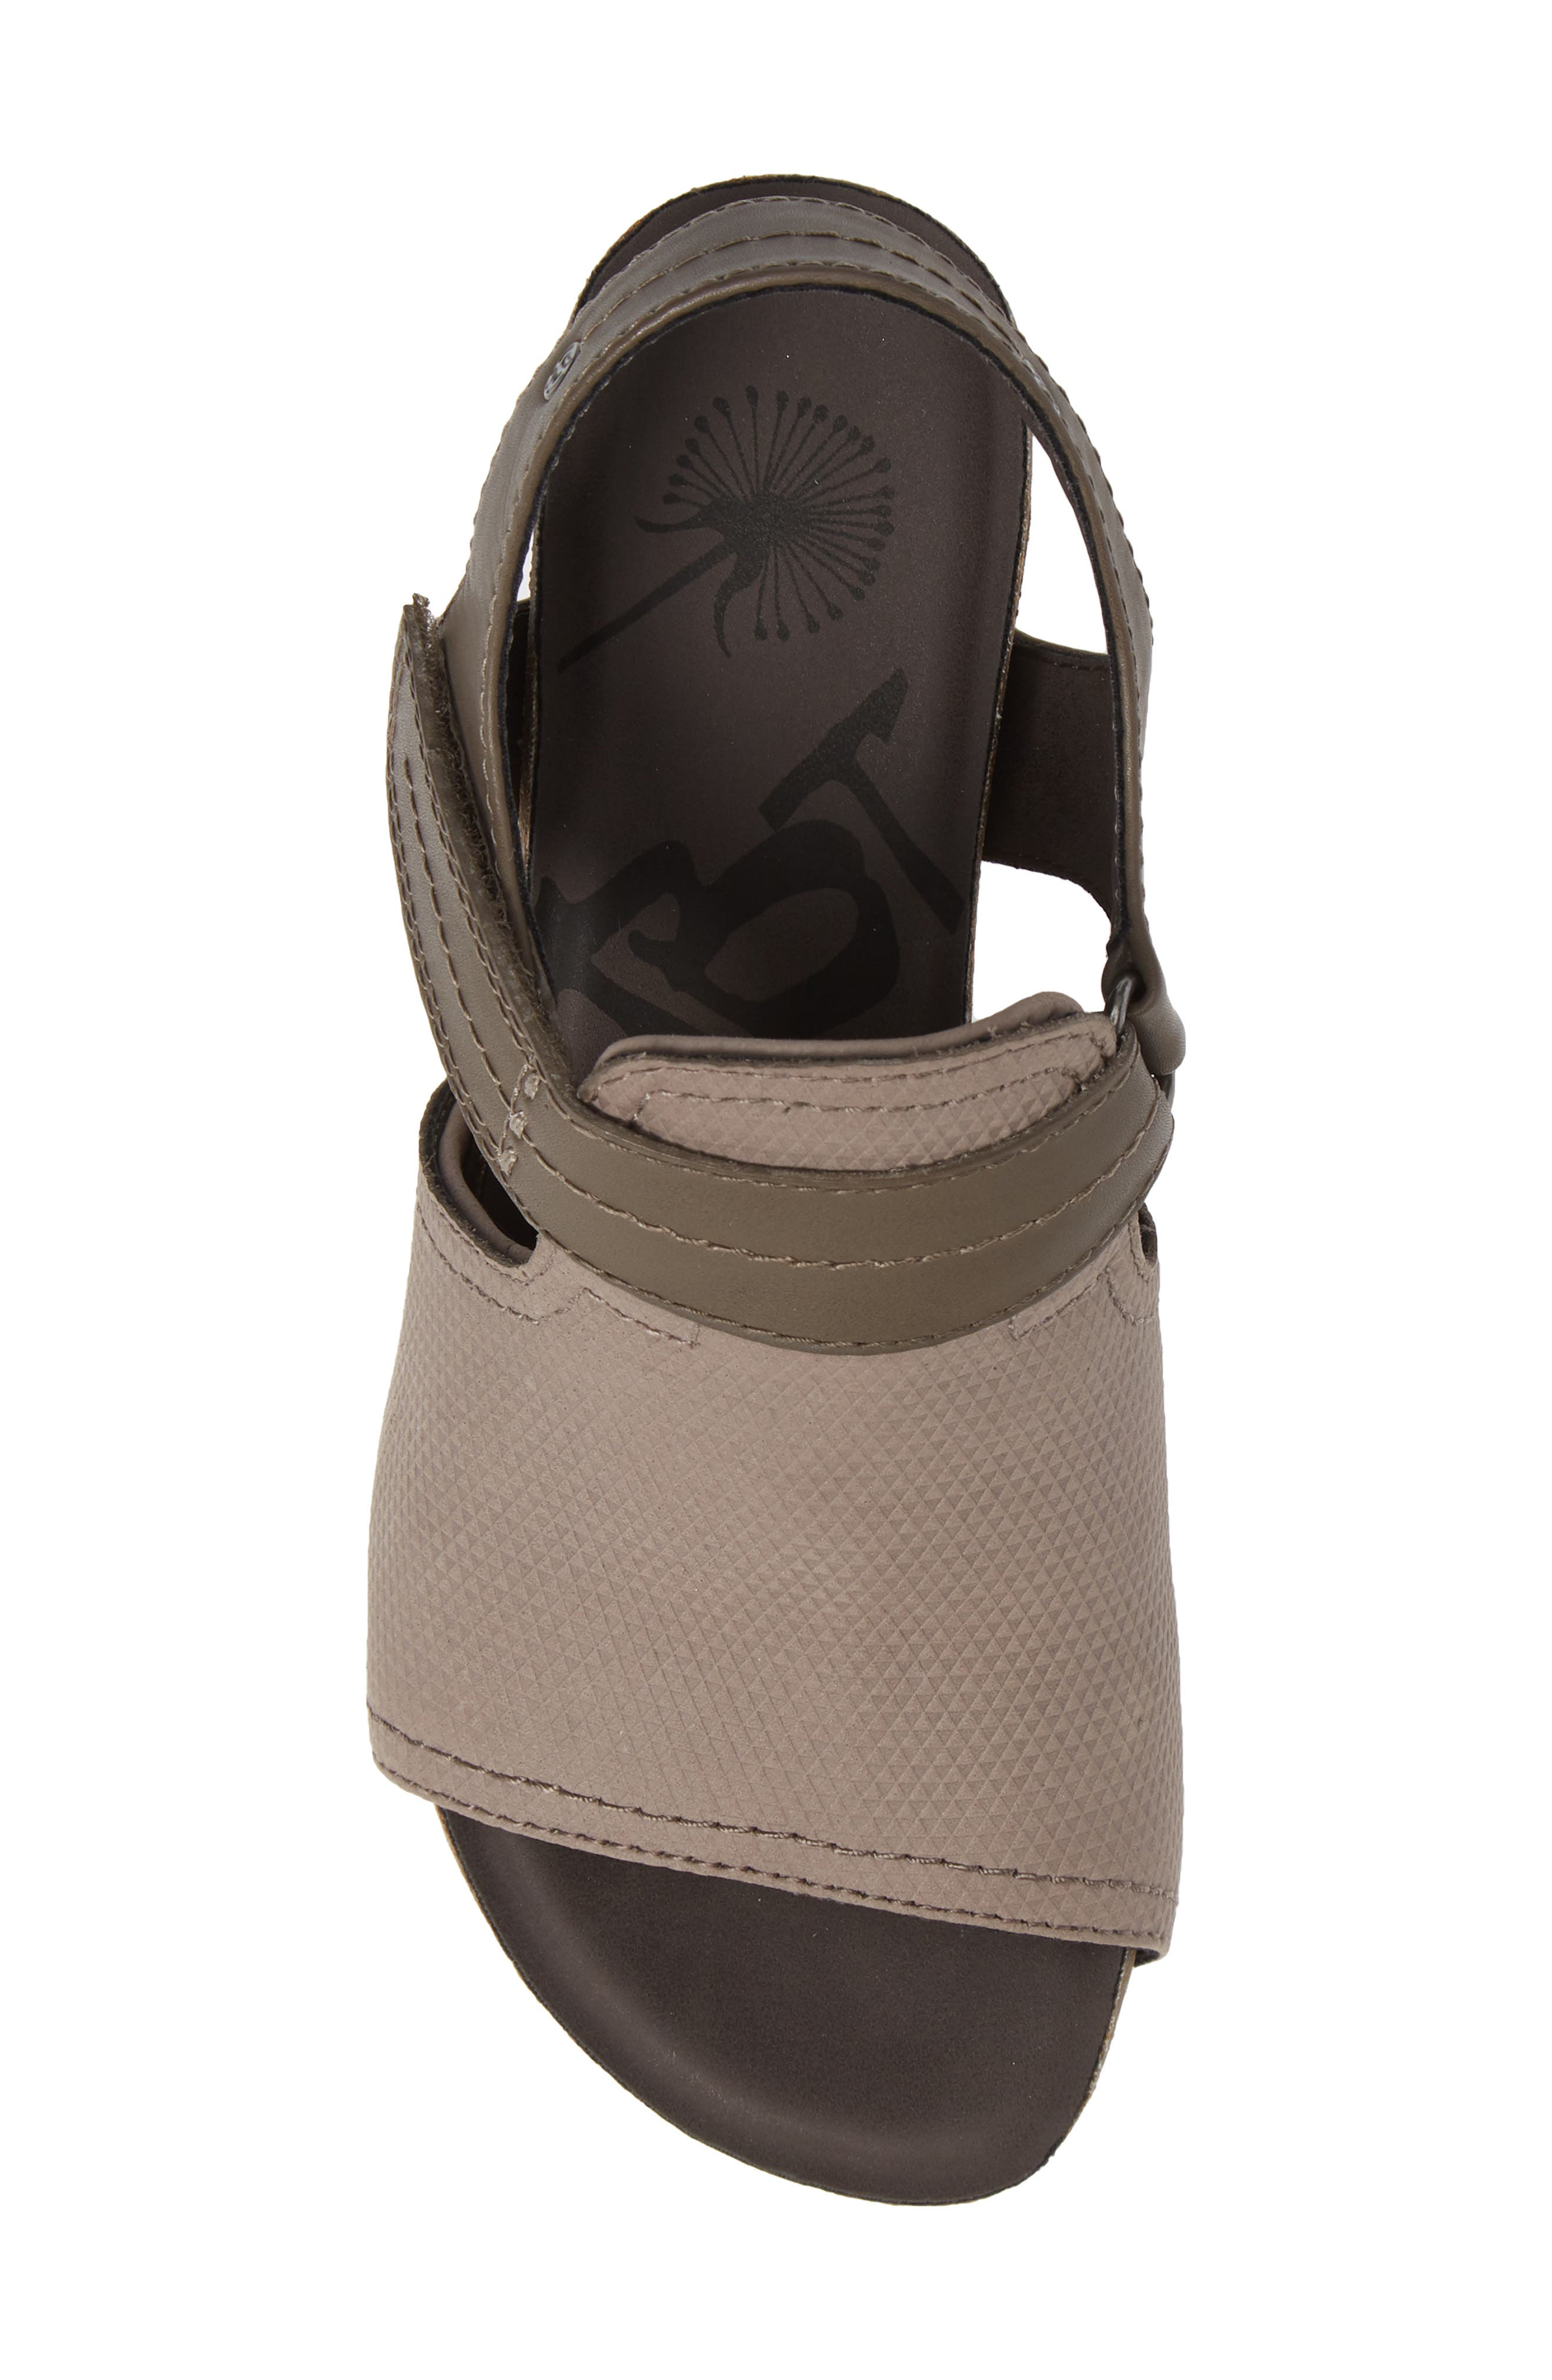 Waypoint Wedge Sandal,                             Alternate thumbnail 5, color,                             CACAO LEATHER